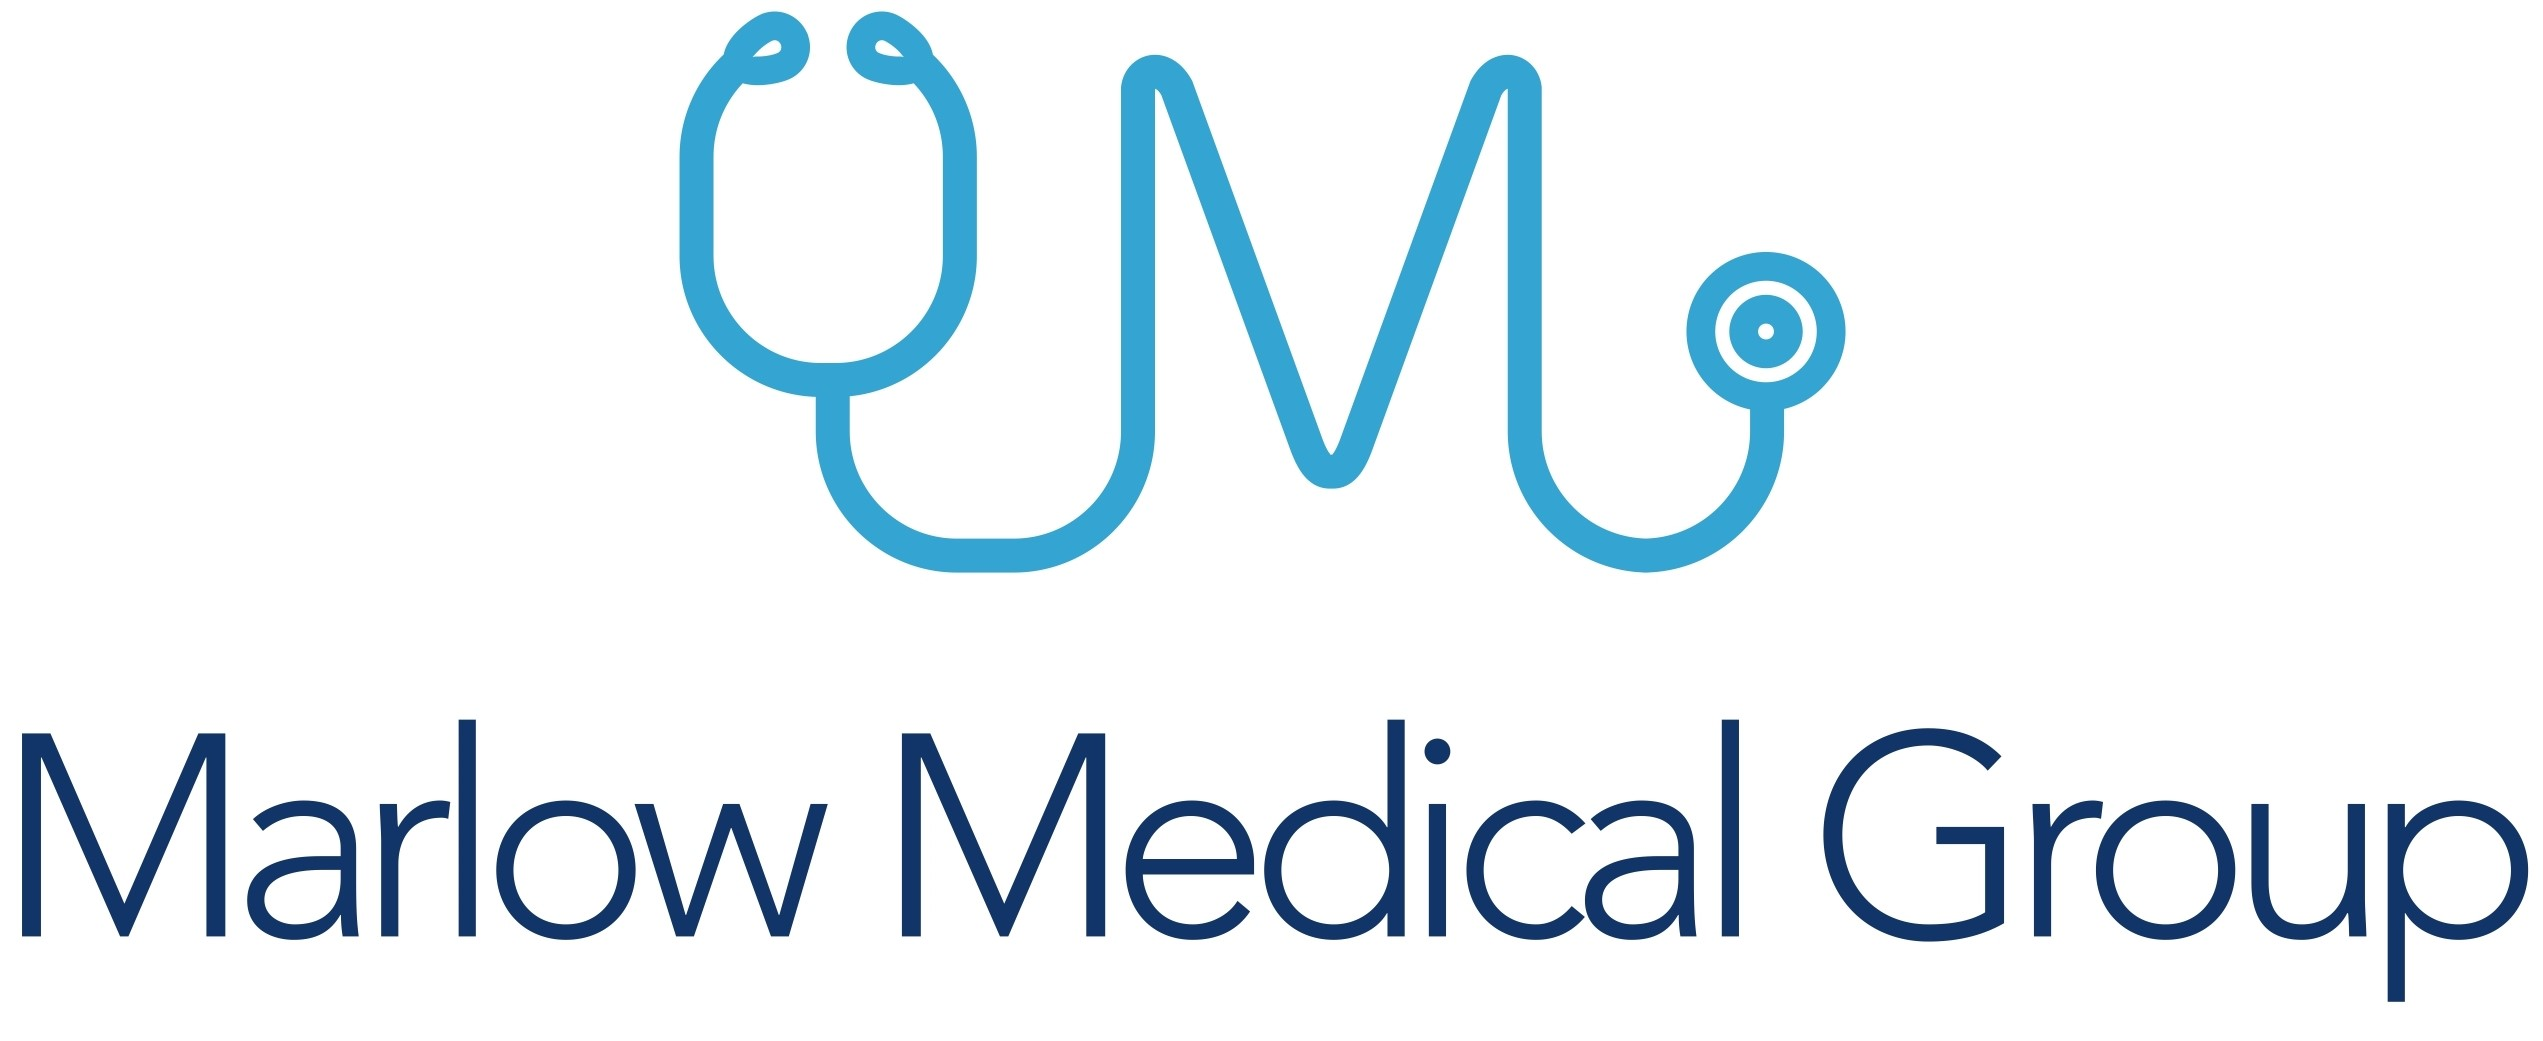 Marlow Medical Practice (Marlow Medical Group)